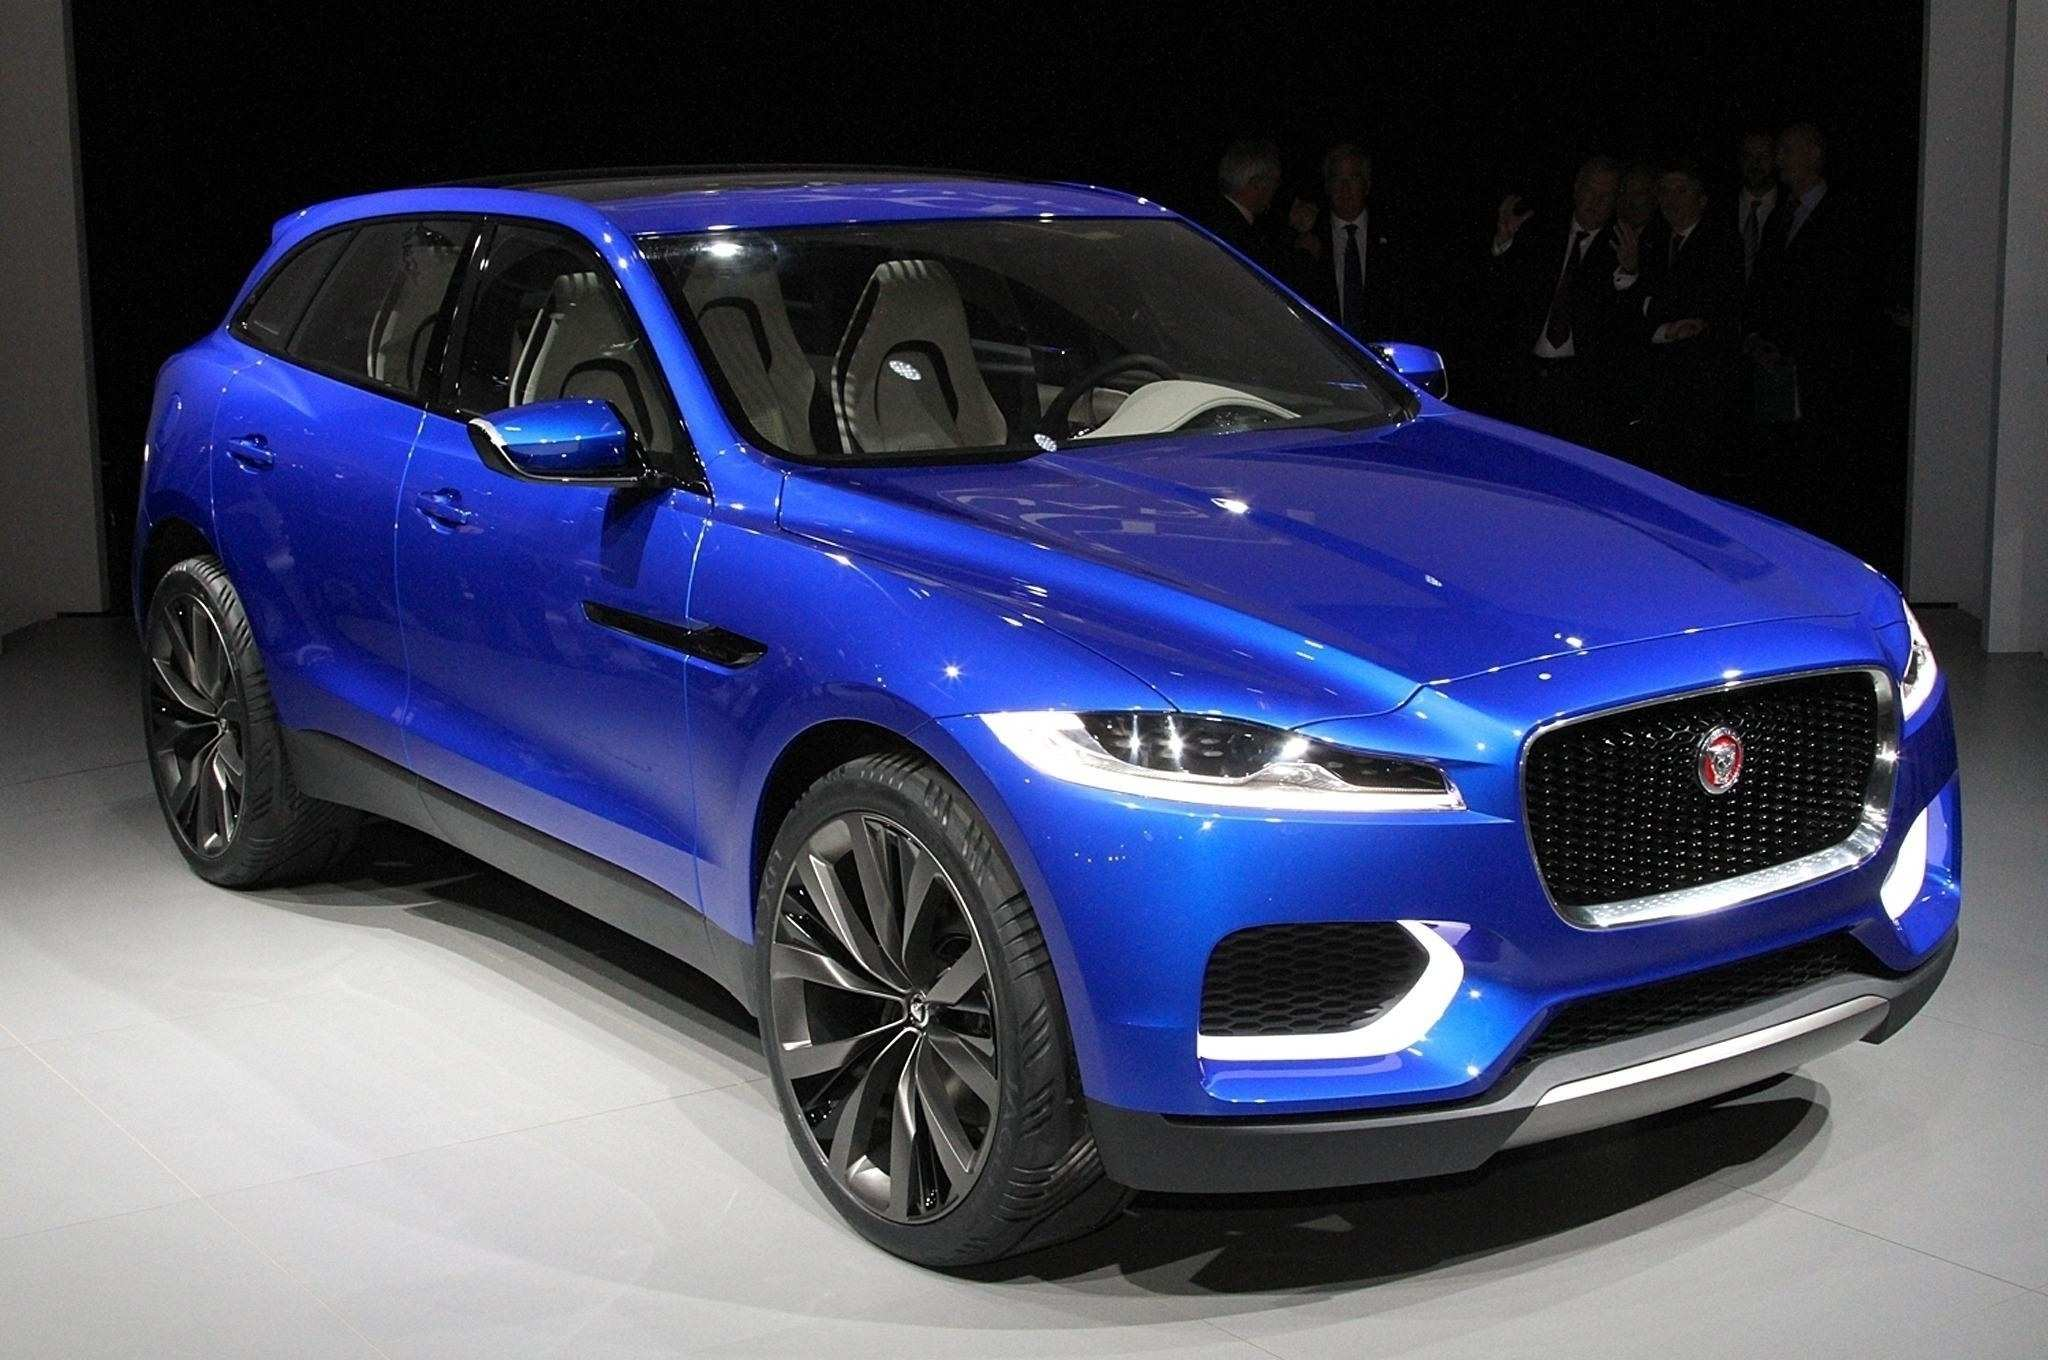 46 All New 2019 Jaguar C X17 Crossover Concept